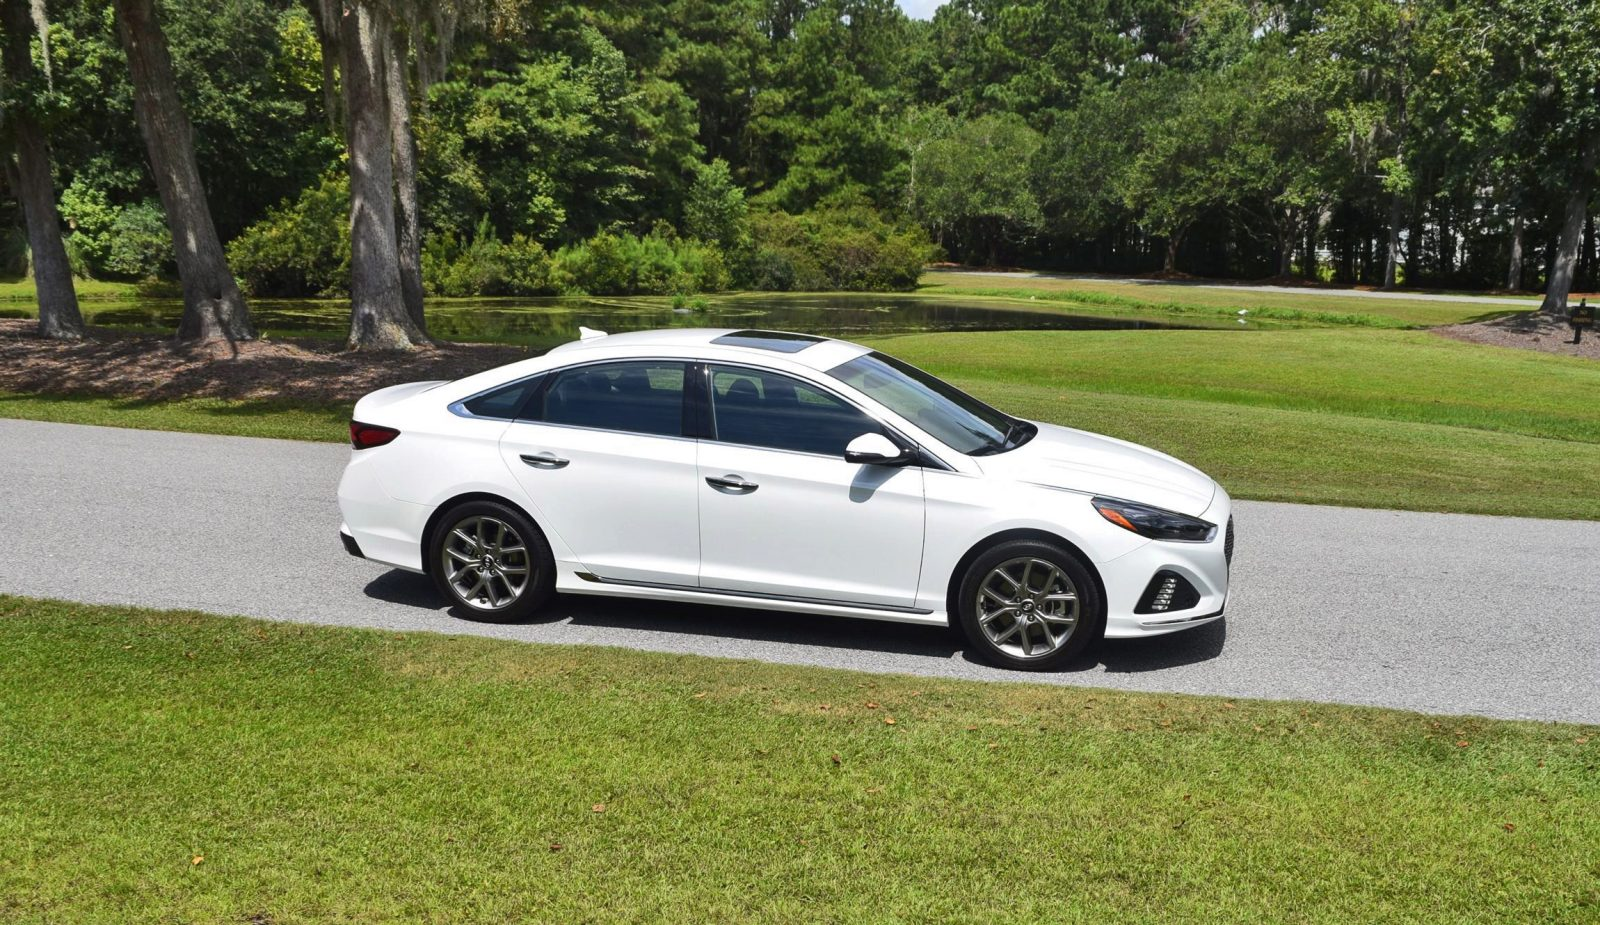 2018 hyundai sonata 2 0t first drive review w video. Black Bedroom Furniture Sets. Home Design Ideas